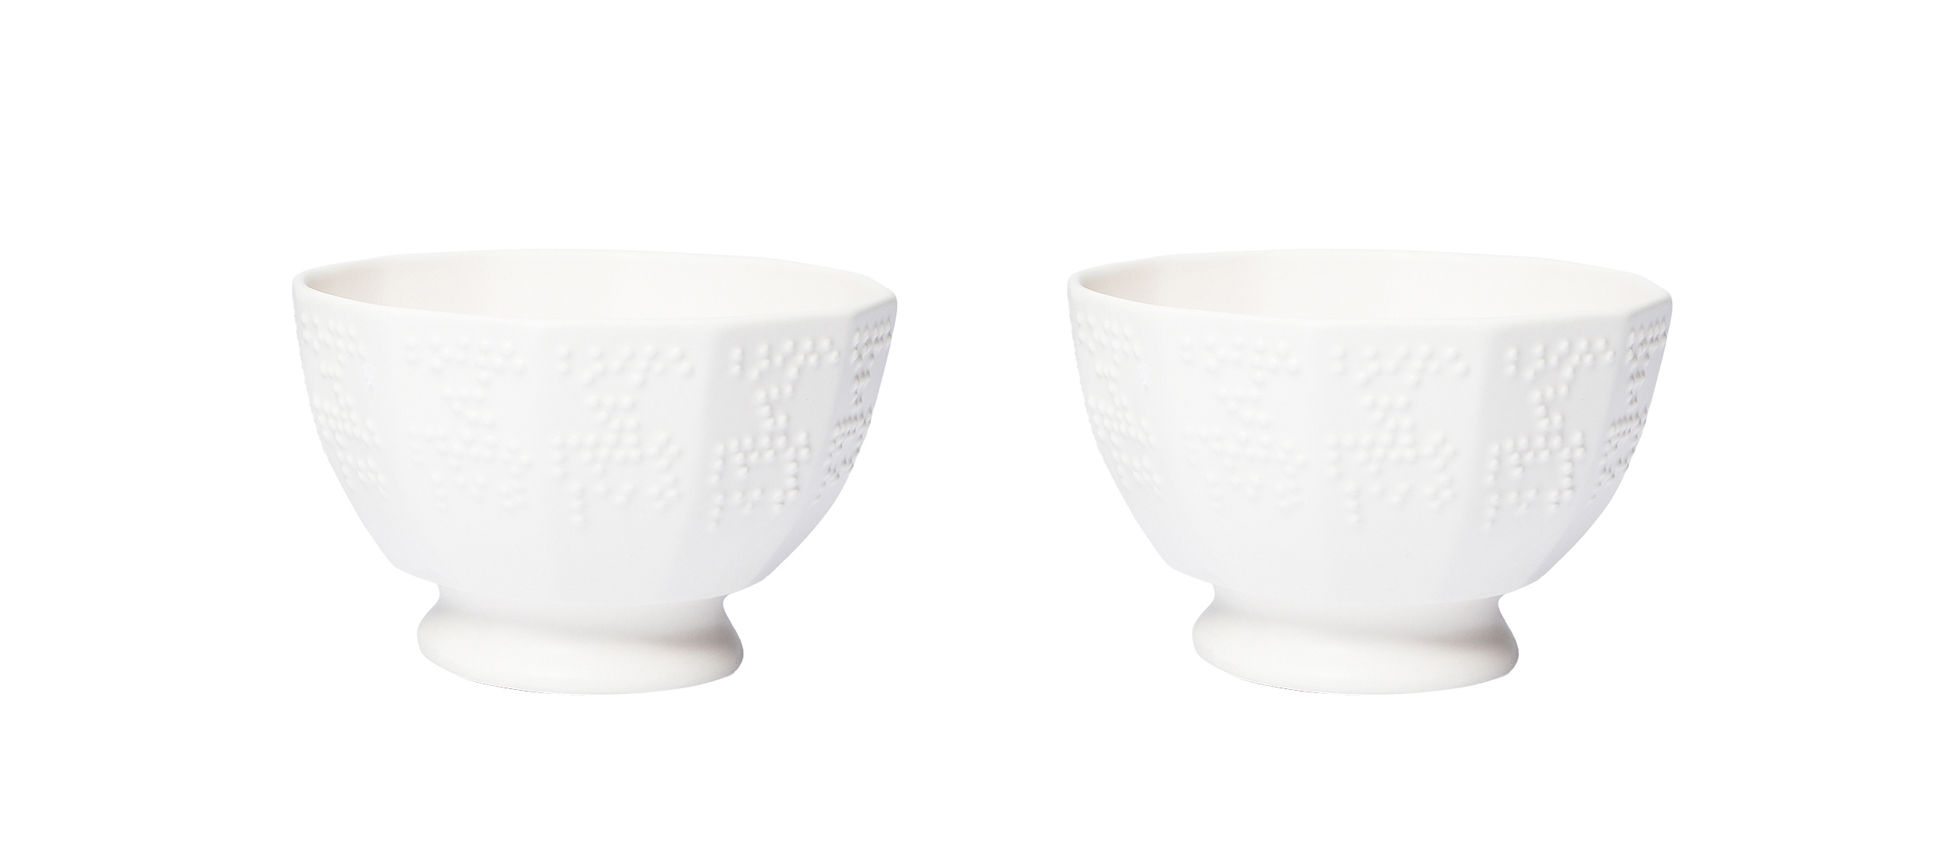 Tableware - Bowls - Figures 1bis Bowl by Petite Friture - Cream white - Ceramic